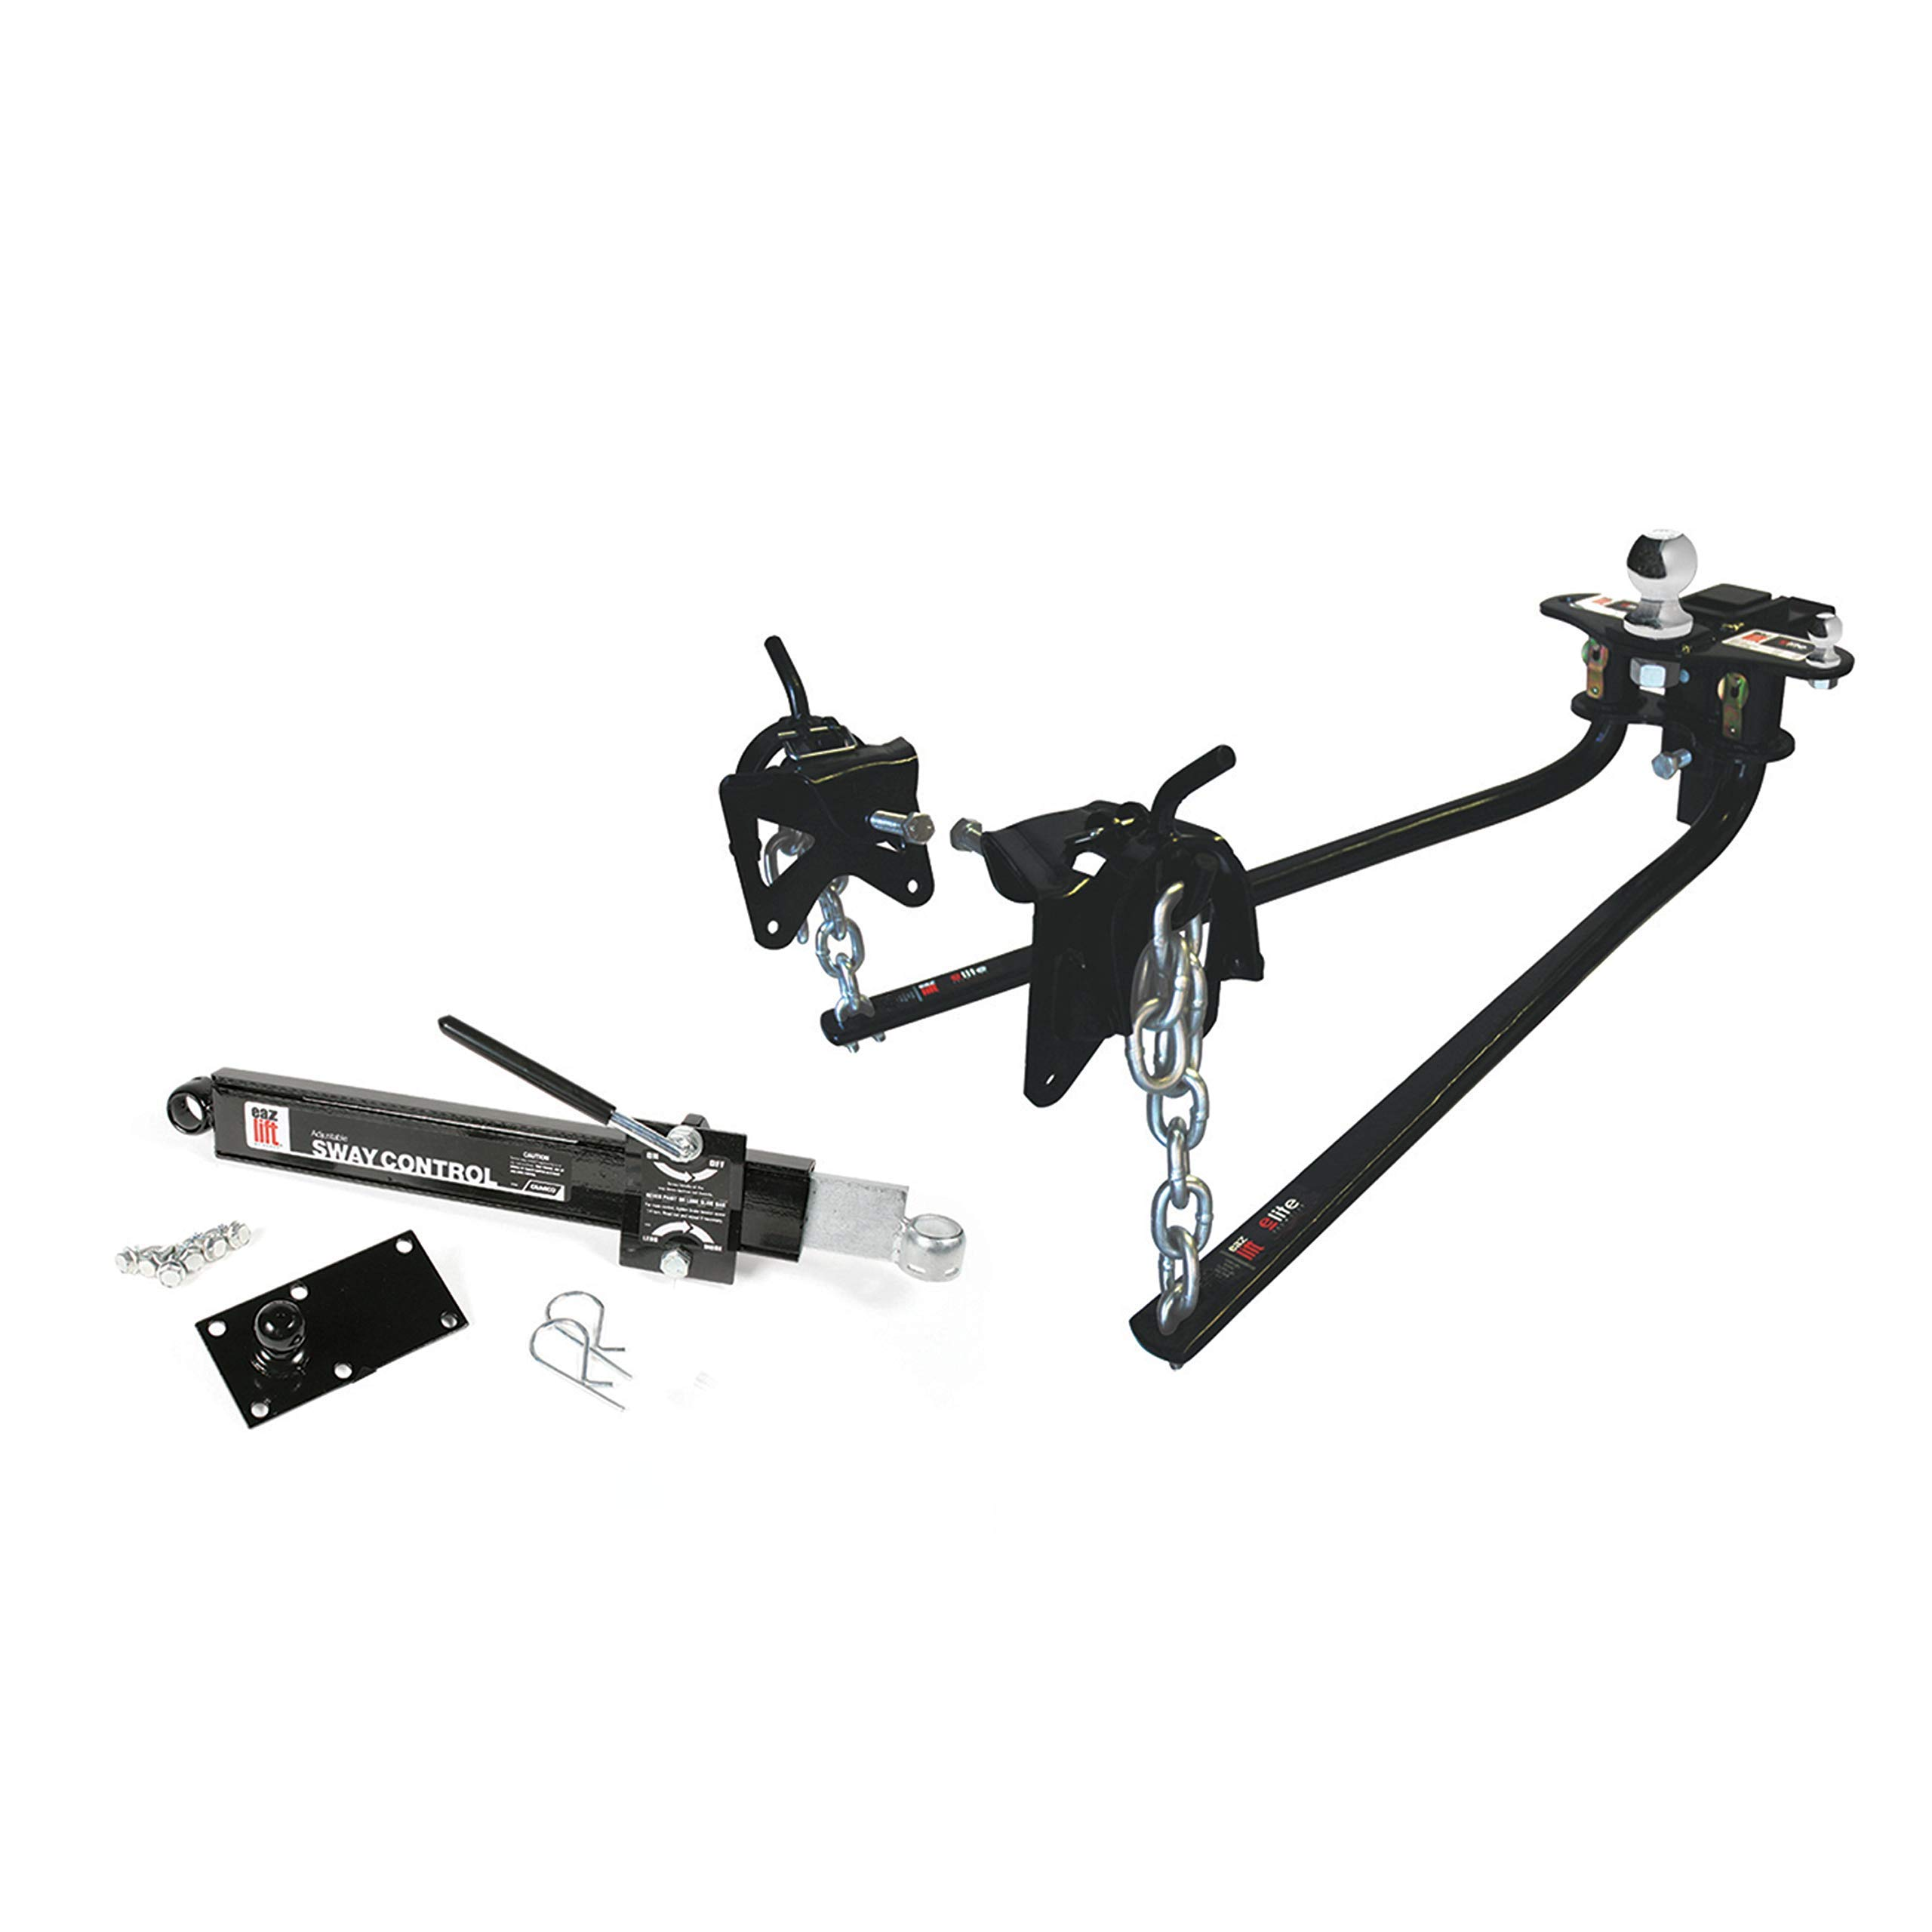 EAZ LIFT 48069 1200 lbs Elite Kit, Includes Distribution, Sway Control and 2-5/16'' Hitch Ball-1,200 lbs Tongue Weight Capacity (48069) (Renewed) by EAZ LIFT